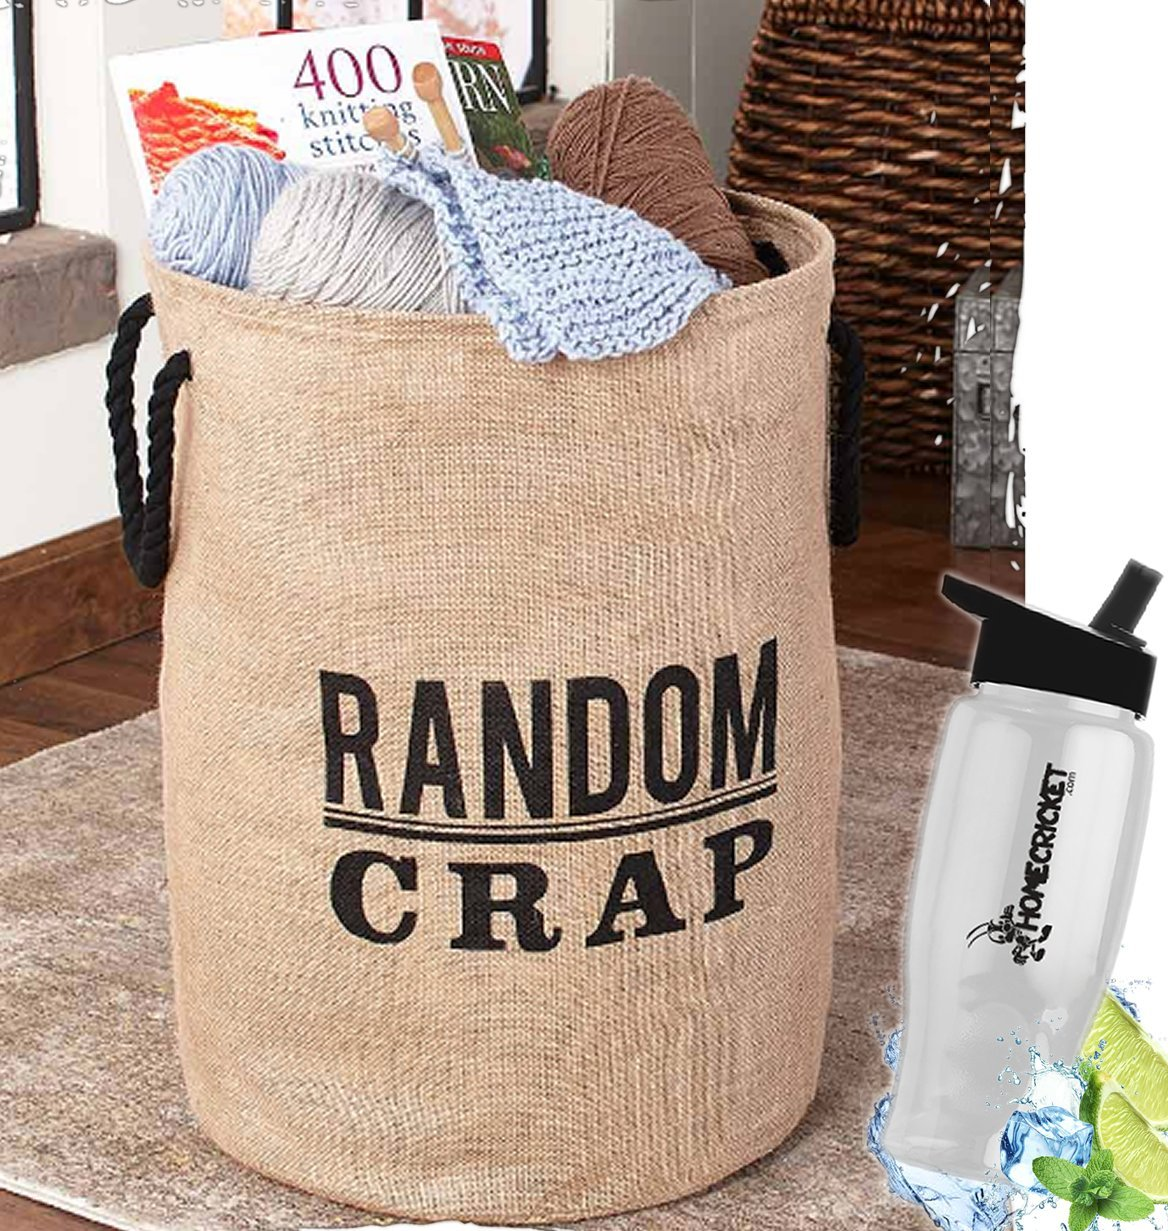 HomeCricket Gift Included- Inspirational Phrase Storage & Organization Bin with Words Random Crap + FREE Bonus Water Bottle by Home Cricket